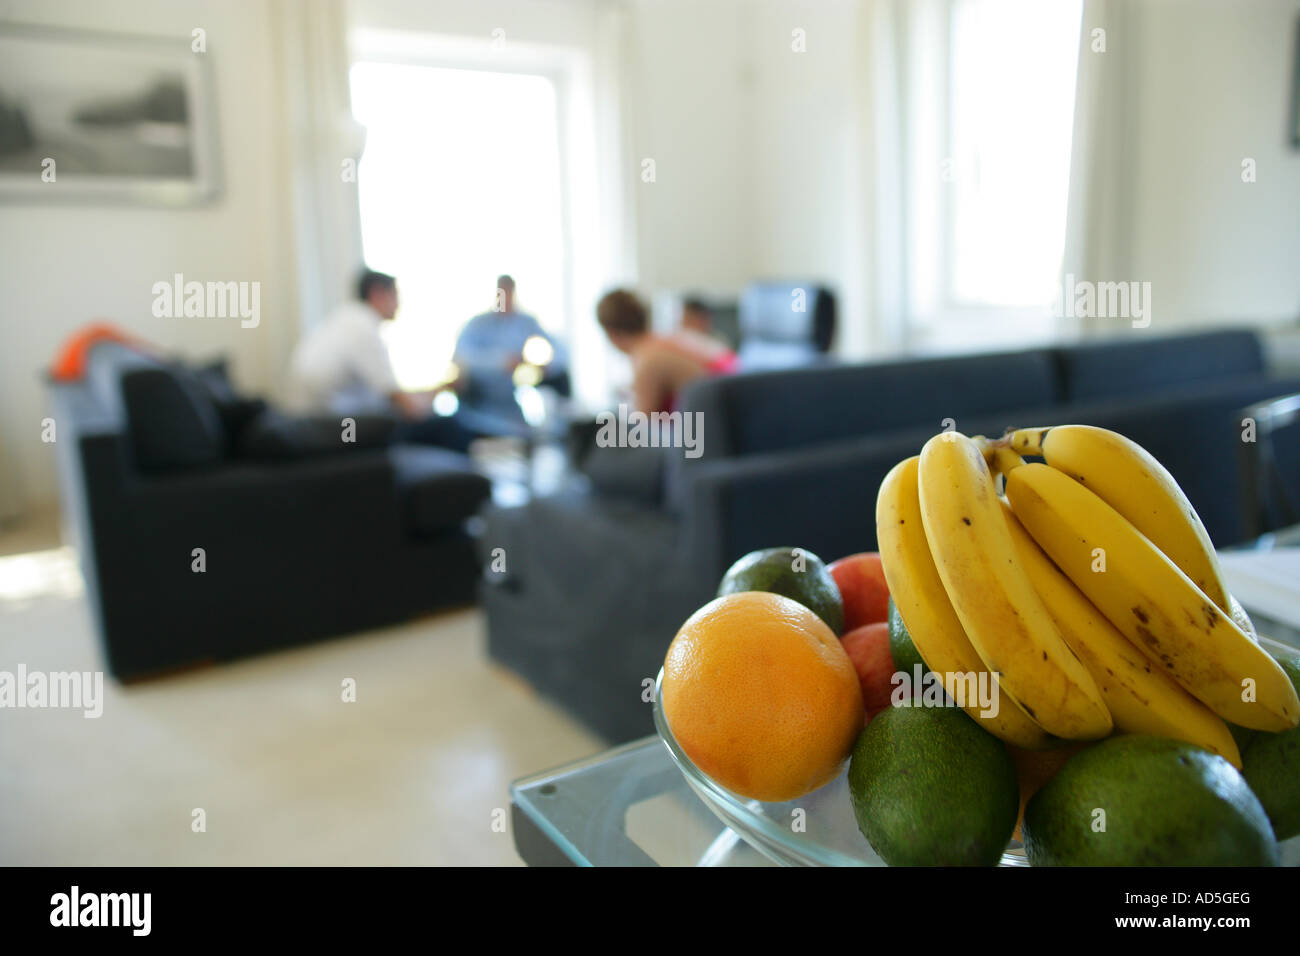 Fruit Plate Set On A Dining Table